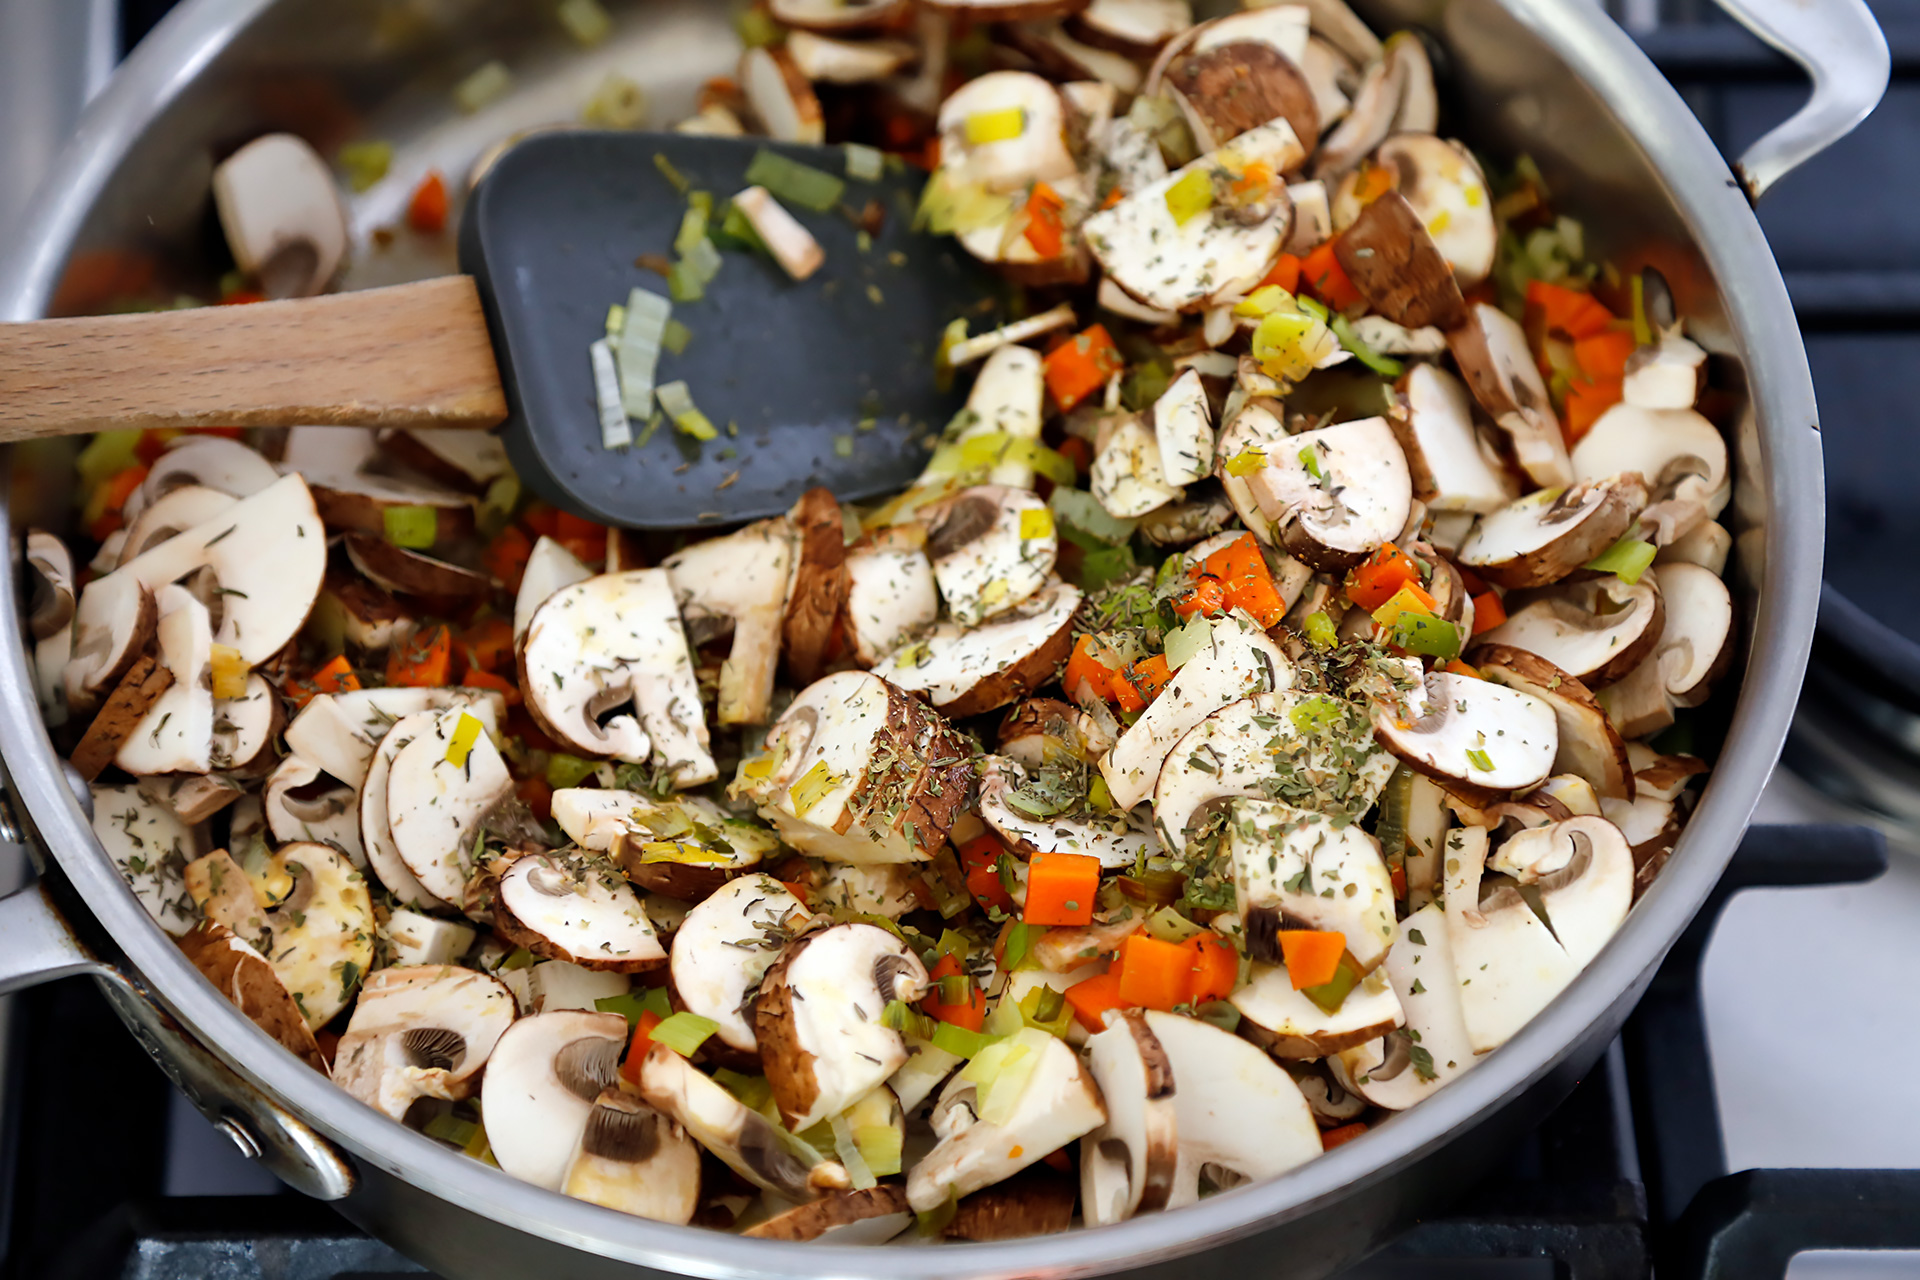 Add the mushrooms and thyme and cook, stirring, until tender, about 4 minutes.